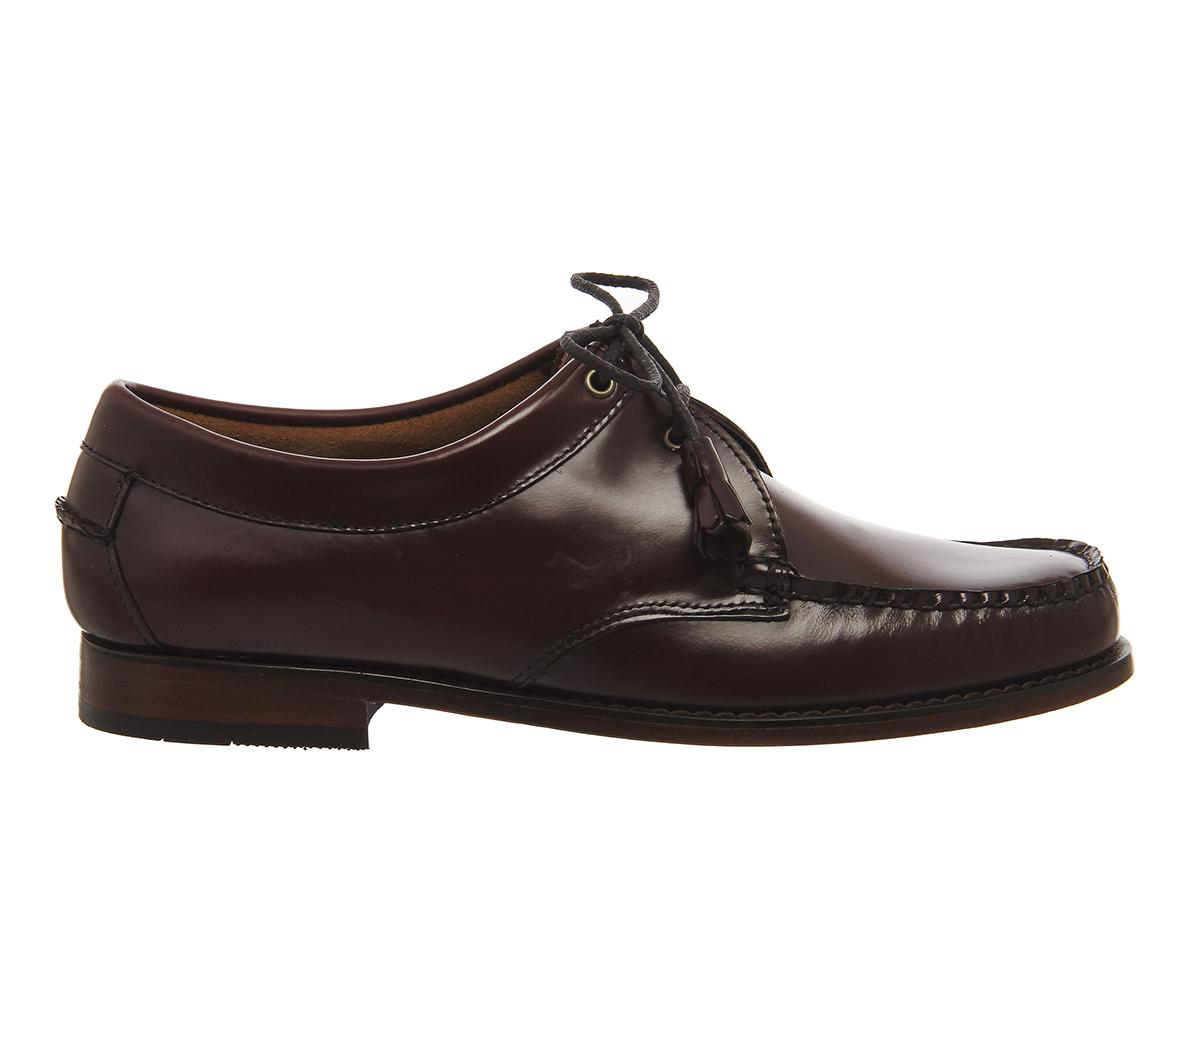 bass products found GH Bass Shoes are founded on the very best materials and skilled workmanship. With a legacy spanning years you can be guaranteed that this brand knows what they are talking about when it comes to fine footwear.